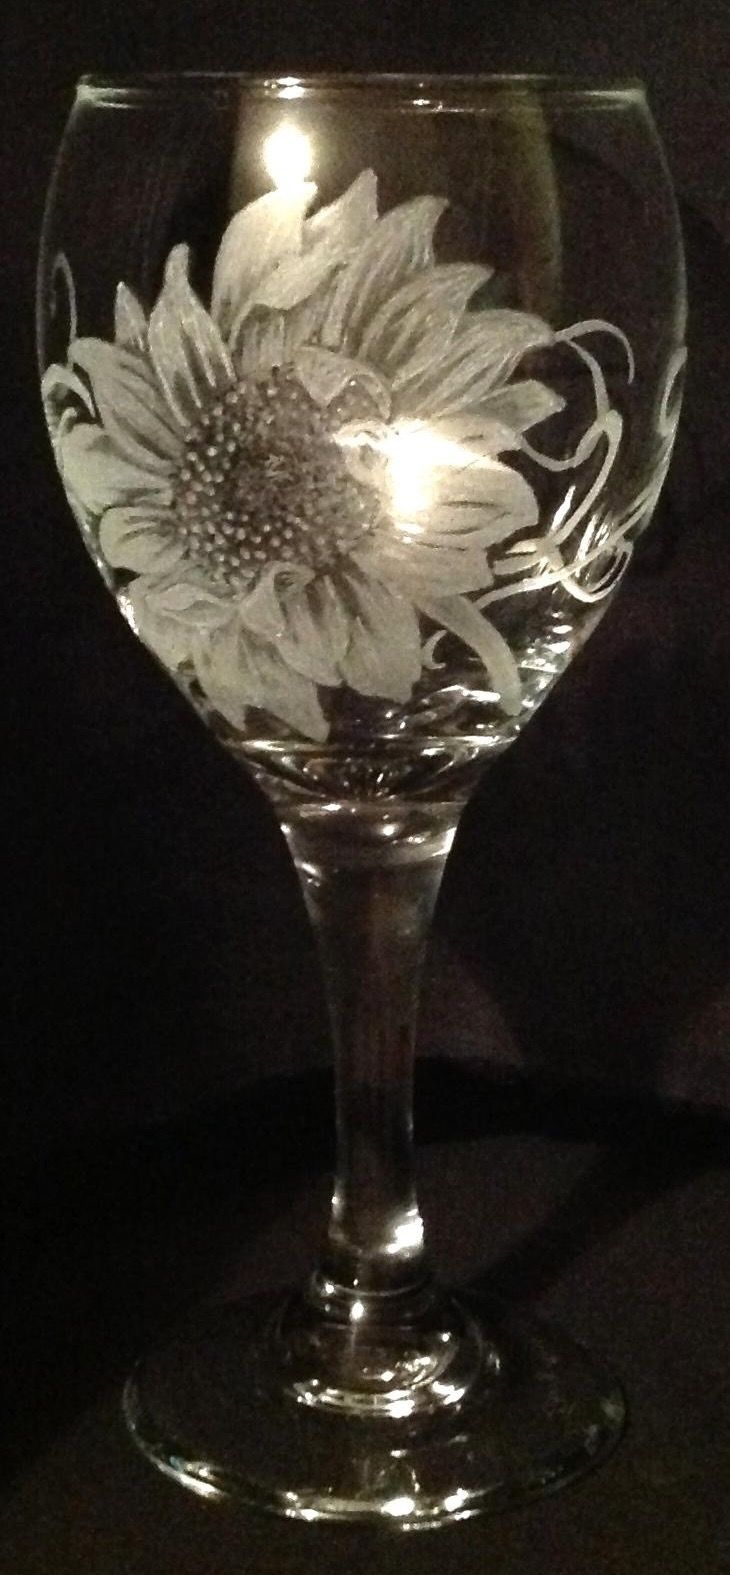 Sun Flower - Glass engraving by Tracy Anne Wilkinson